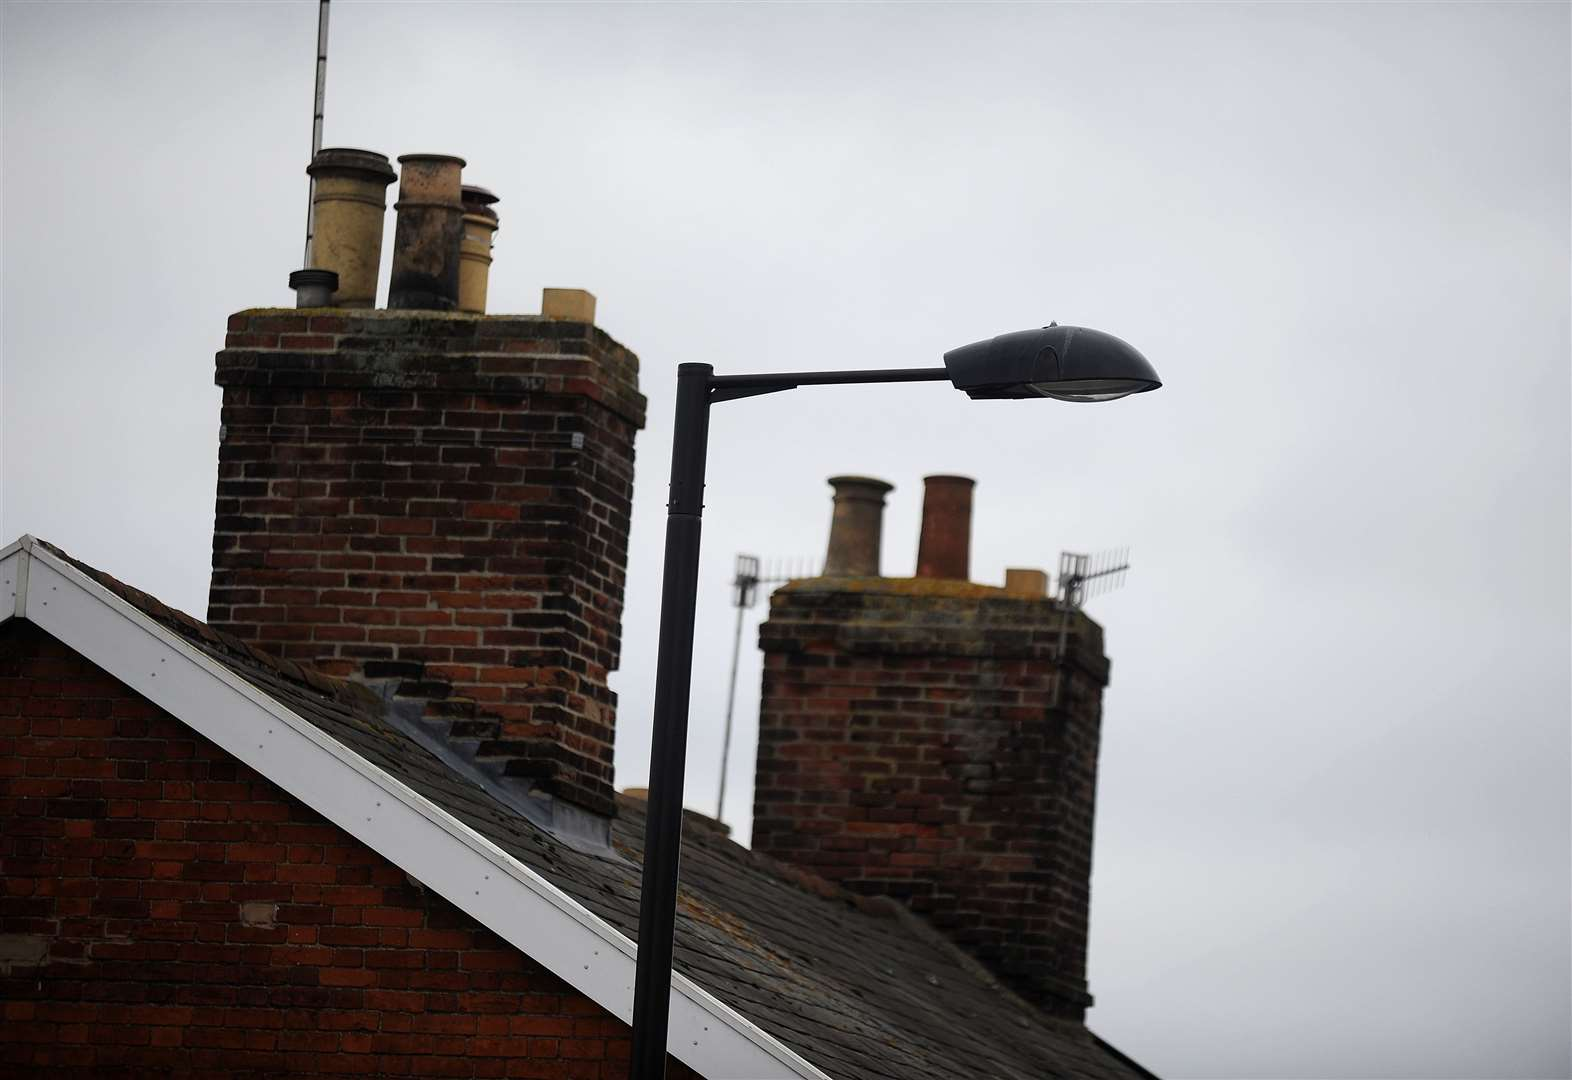 Fenland District Council set to give £210k boost for village street lights